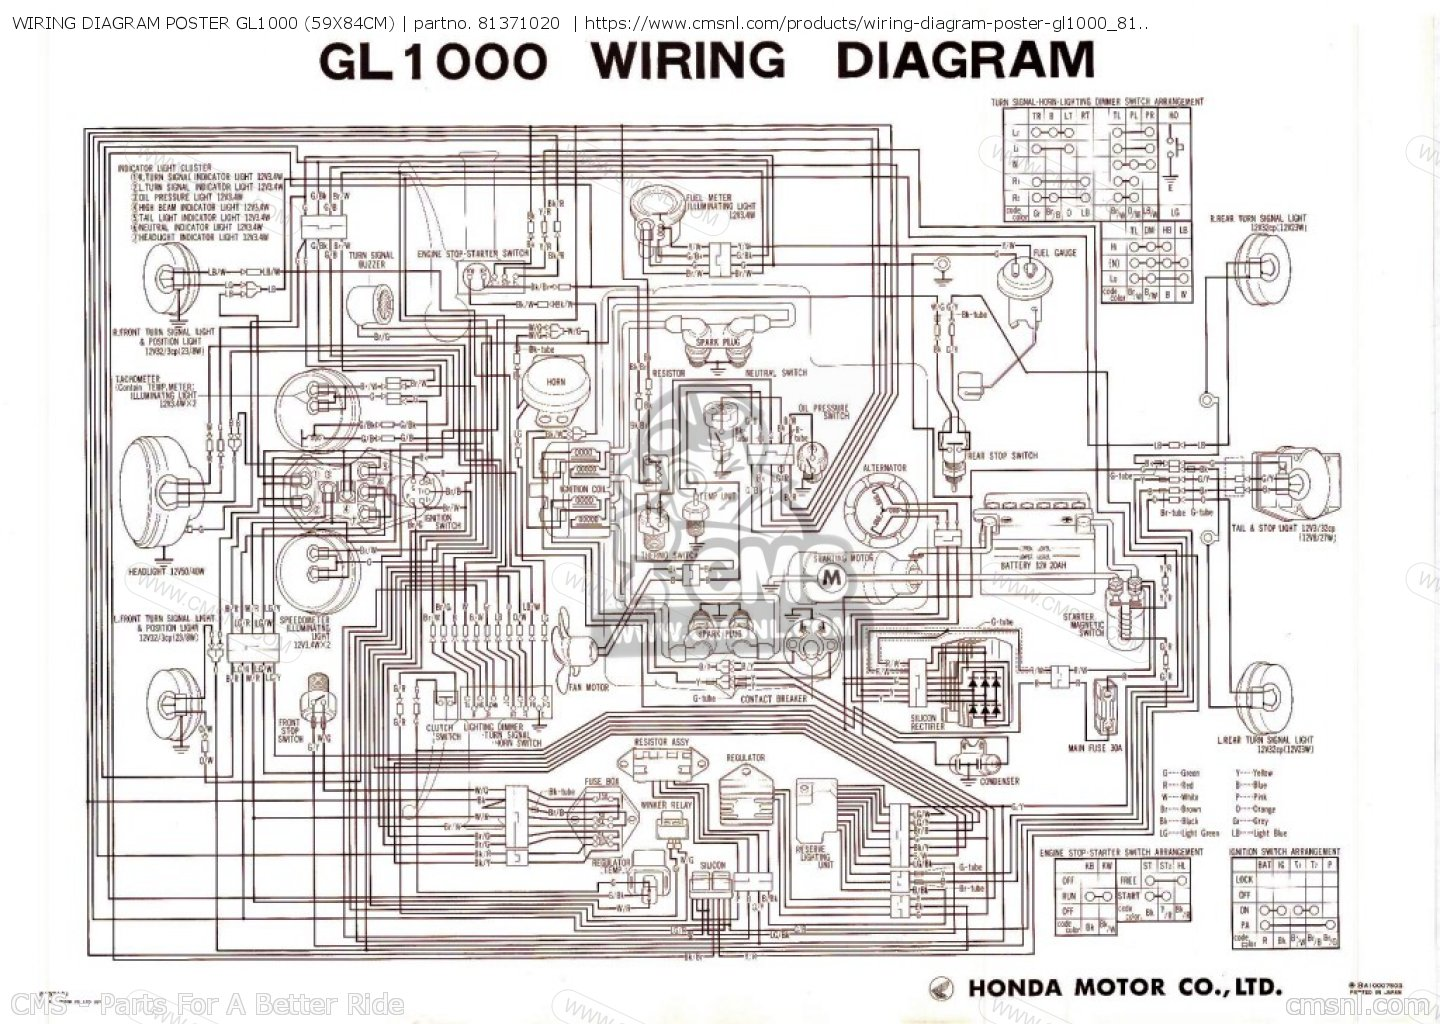 gl1000 wiring diagram wiring wiring diagrams instructions rh w justdesktopwallpapers com 1976 honda gl1000 wiring diagram honda goldwing 1500 wiring diagram